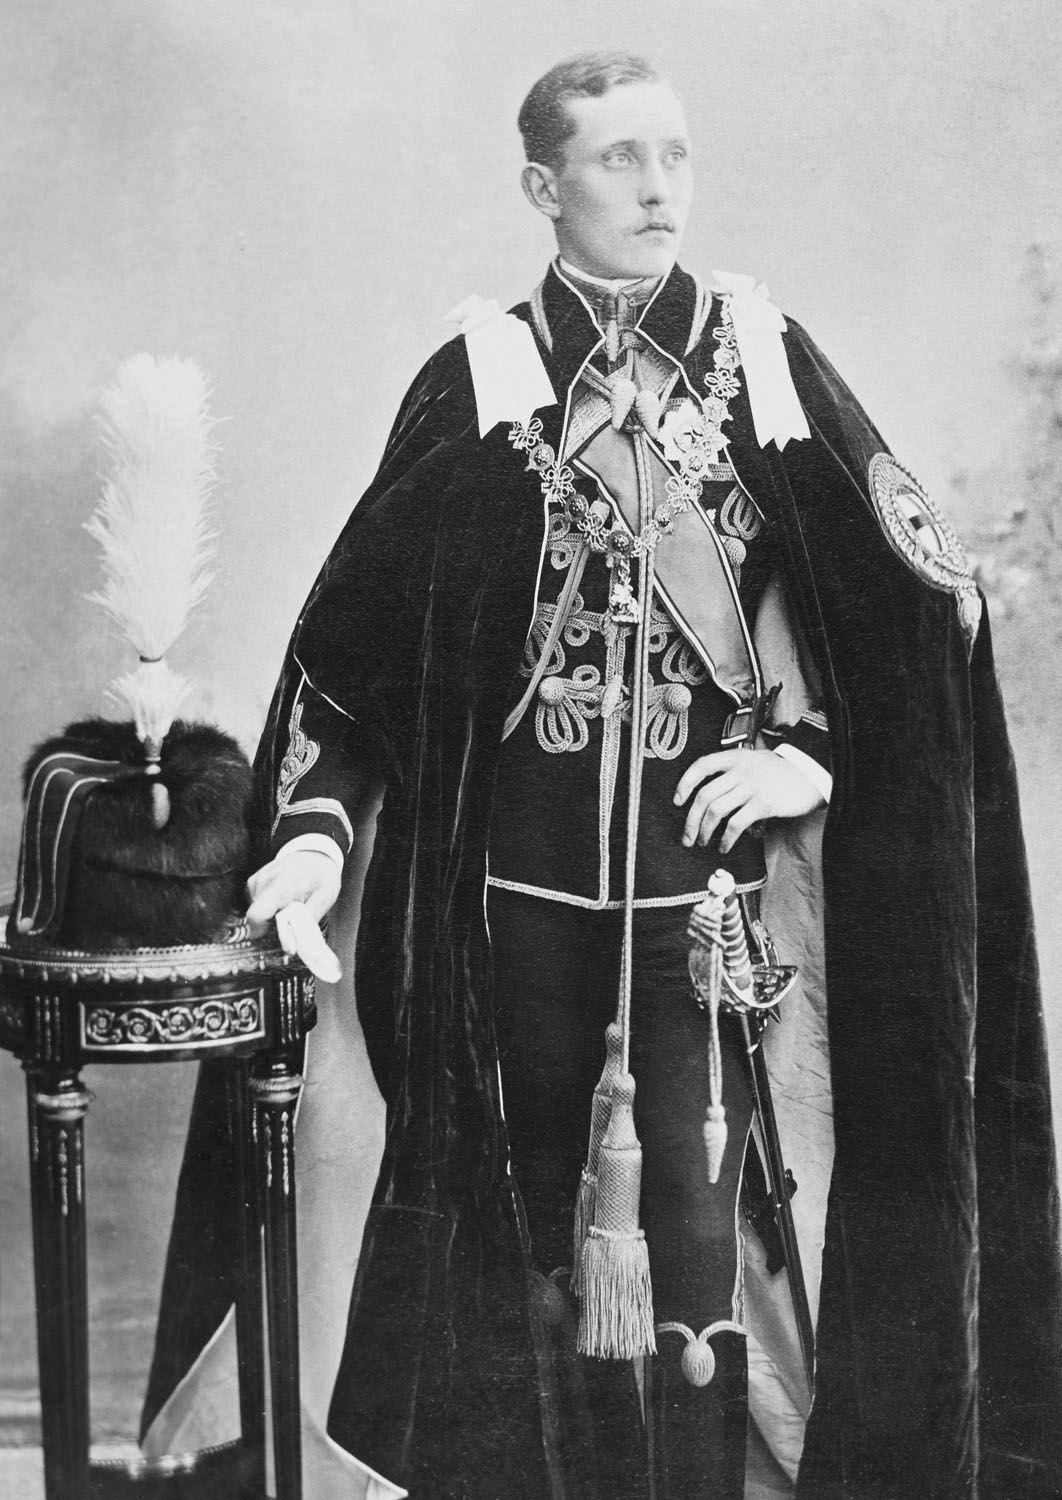 Prince Arthur, Duke of Connaught and Strathearn, UK